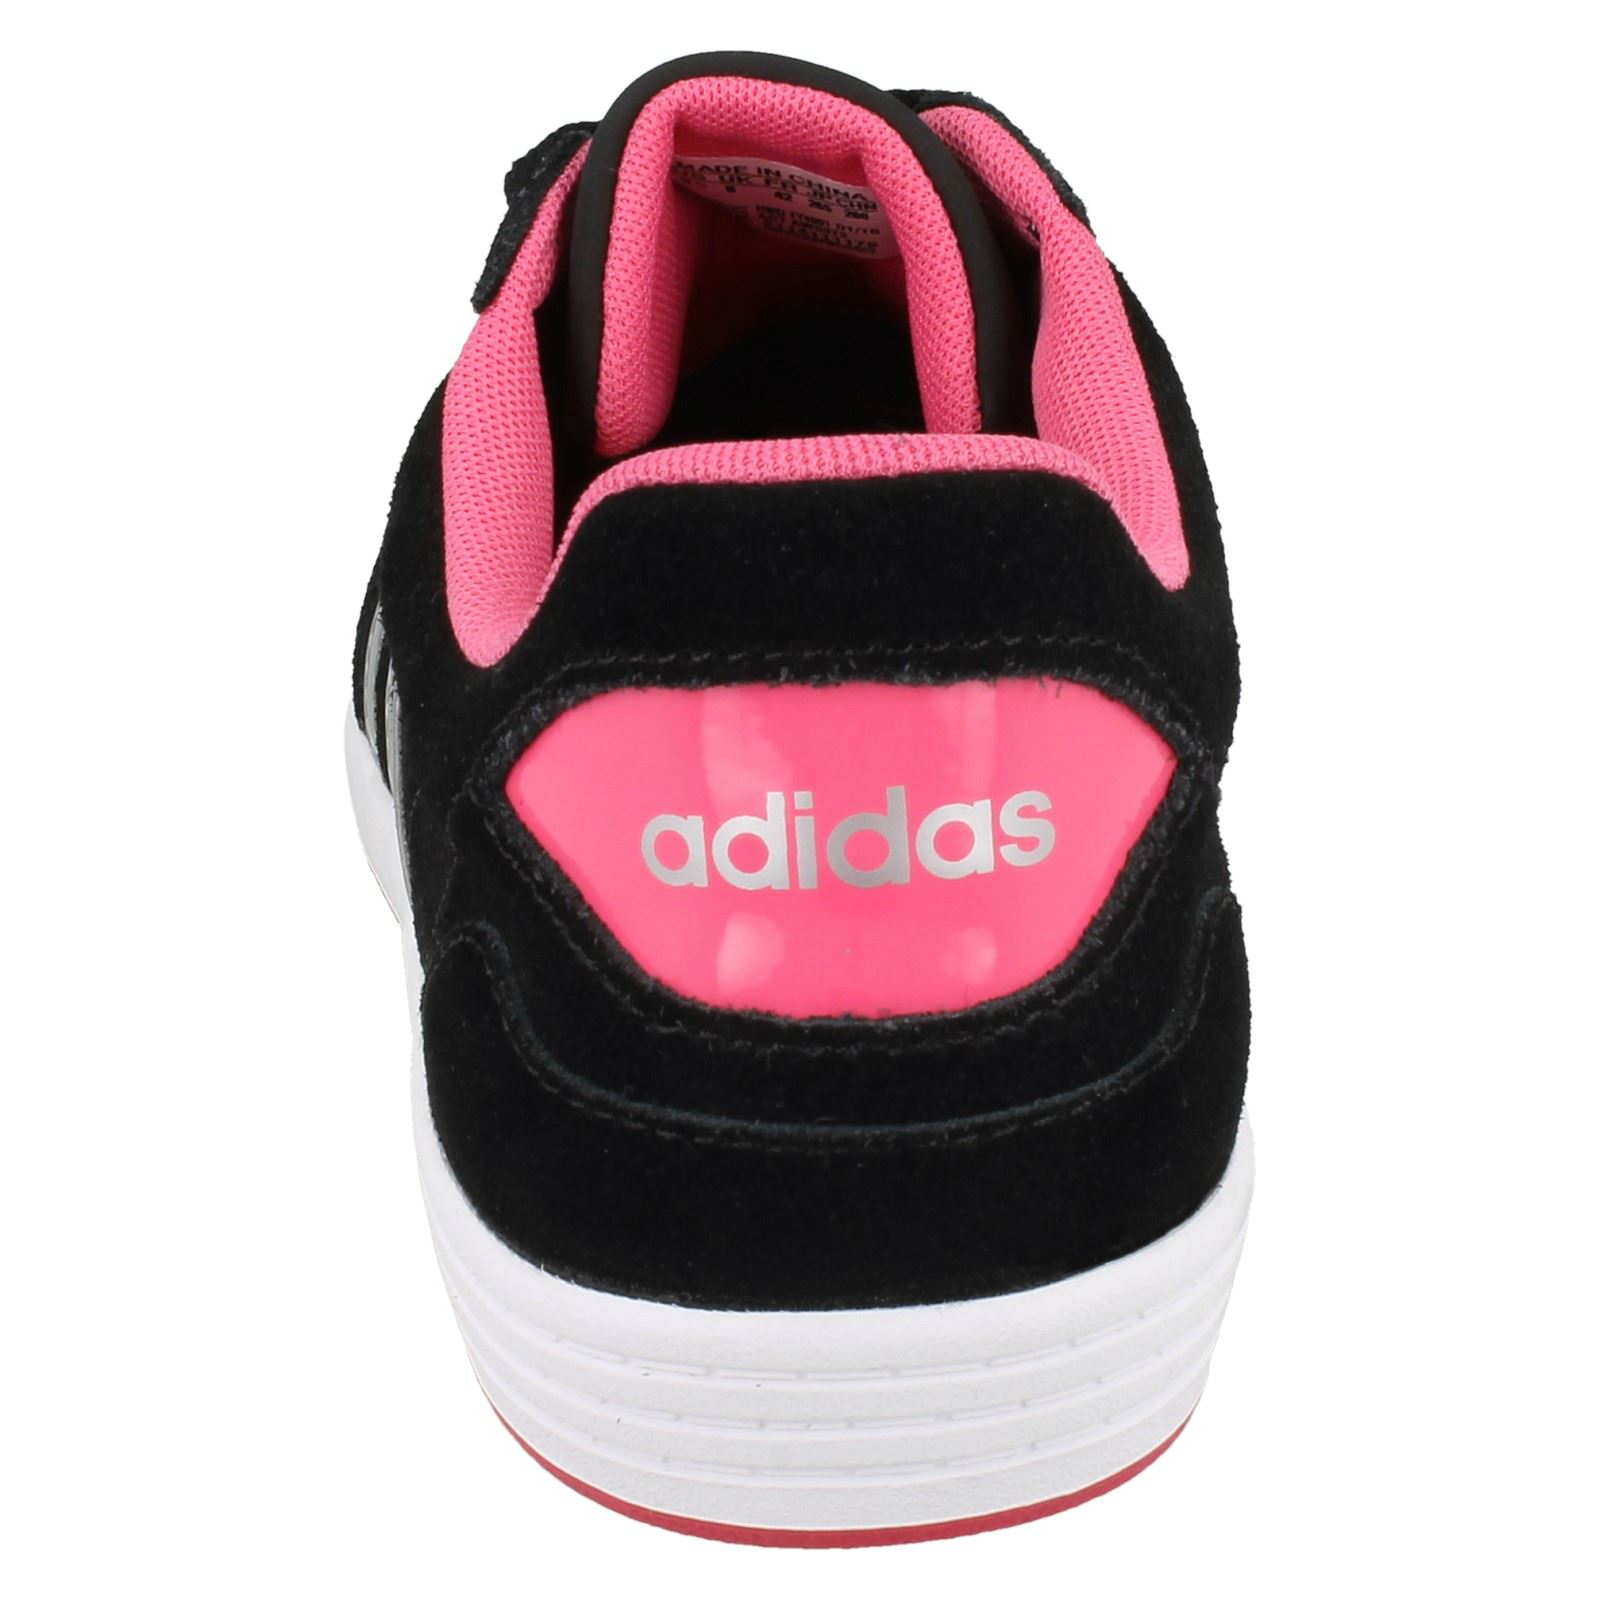 Ladies Adidas Hoops VL W AW5372 Lace Up Sport Trainers   eBay